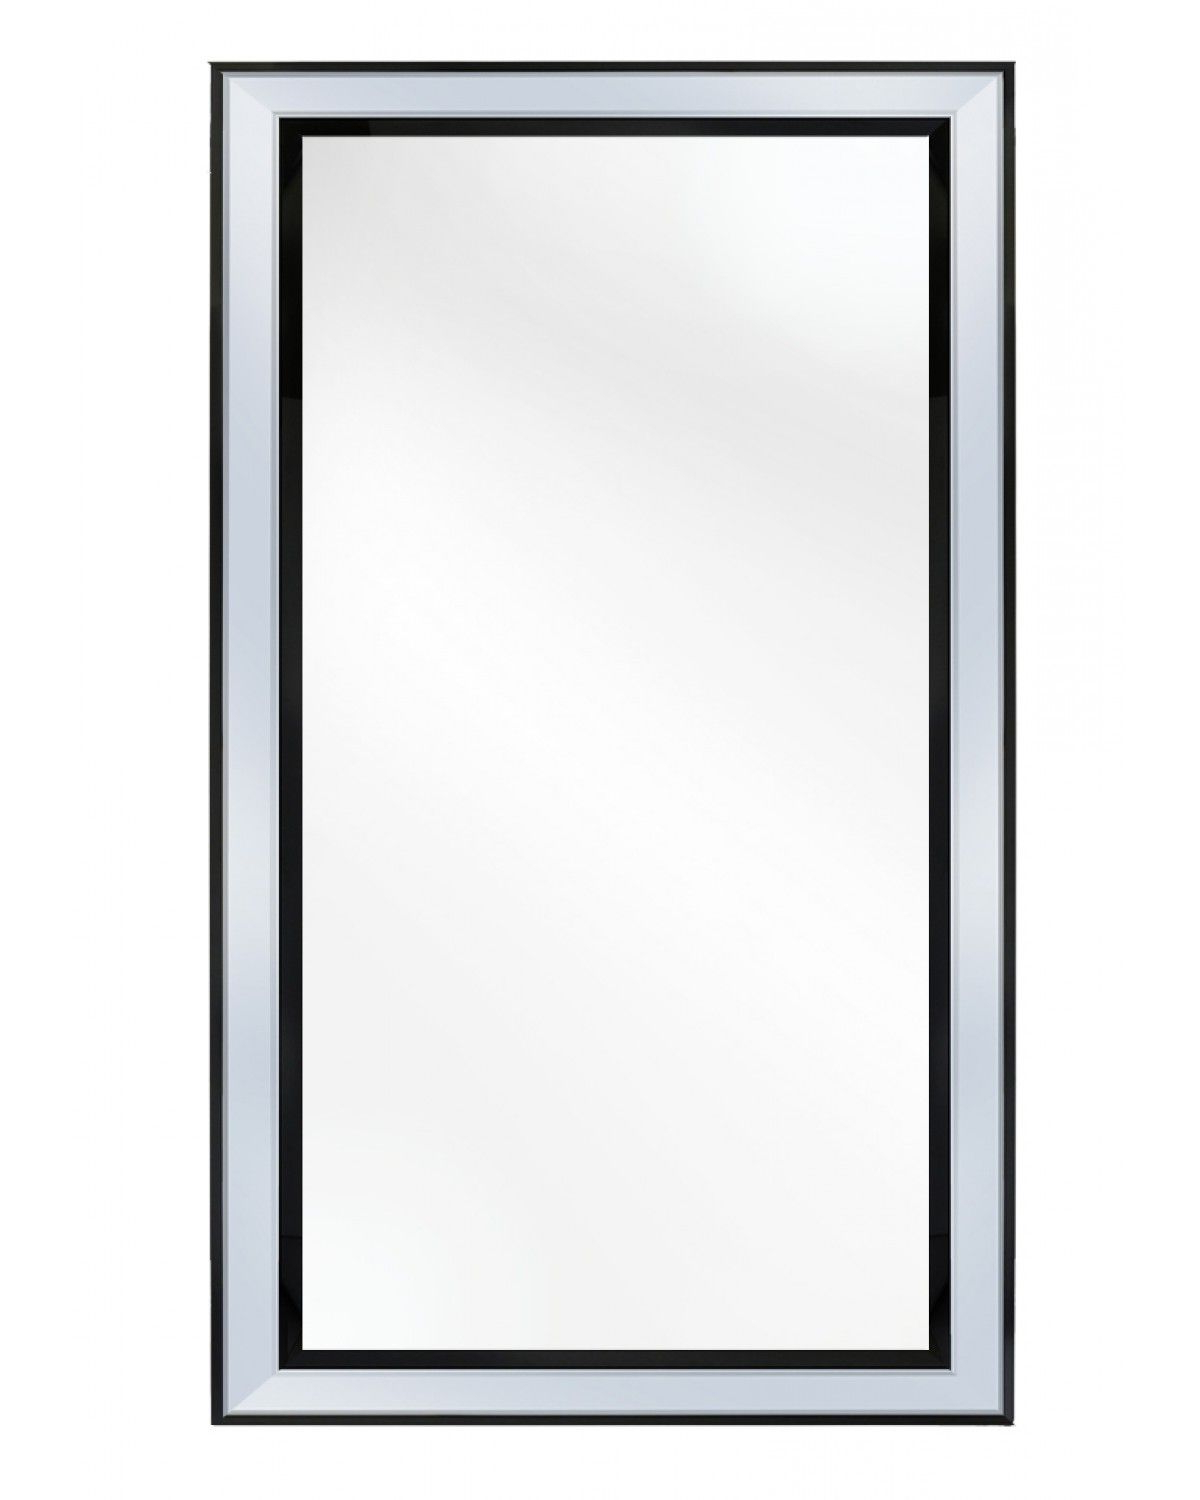 Black Rectangle Wall Mirrors Pertaining To Well Liked Black Modena Rectangle Wall Mirror (View 17 of 20)